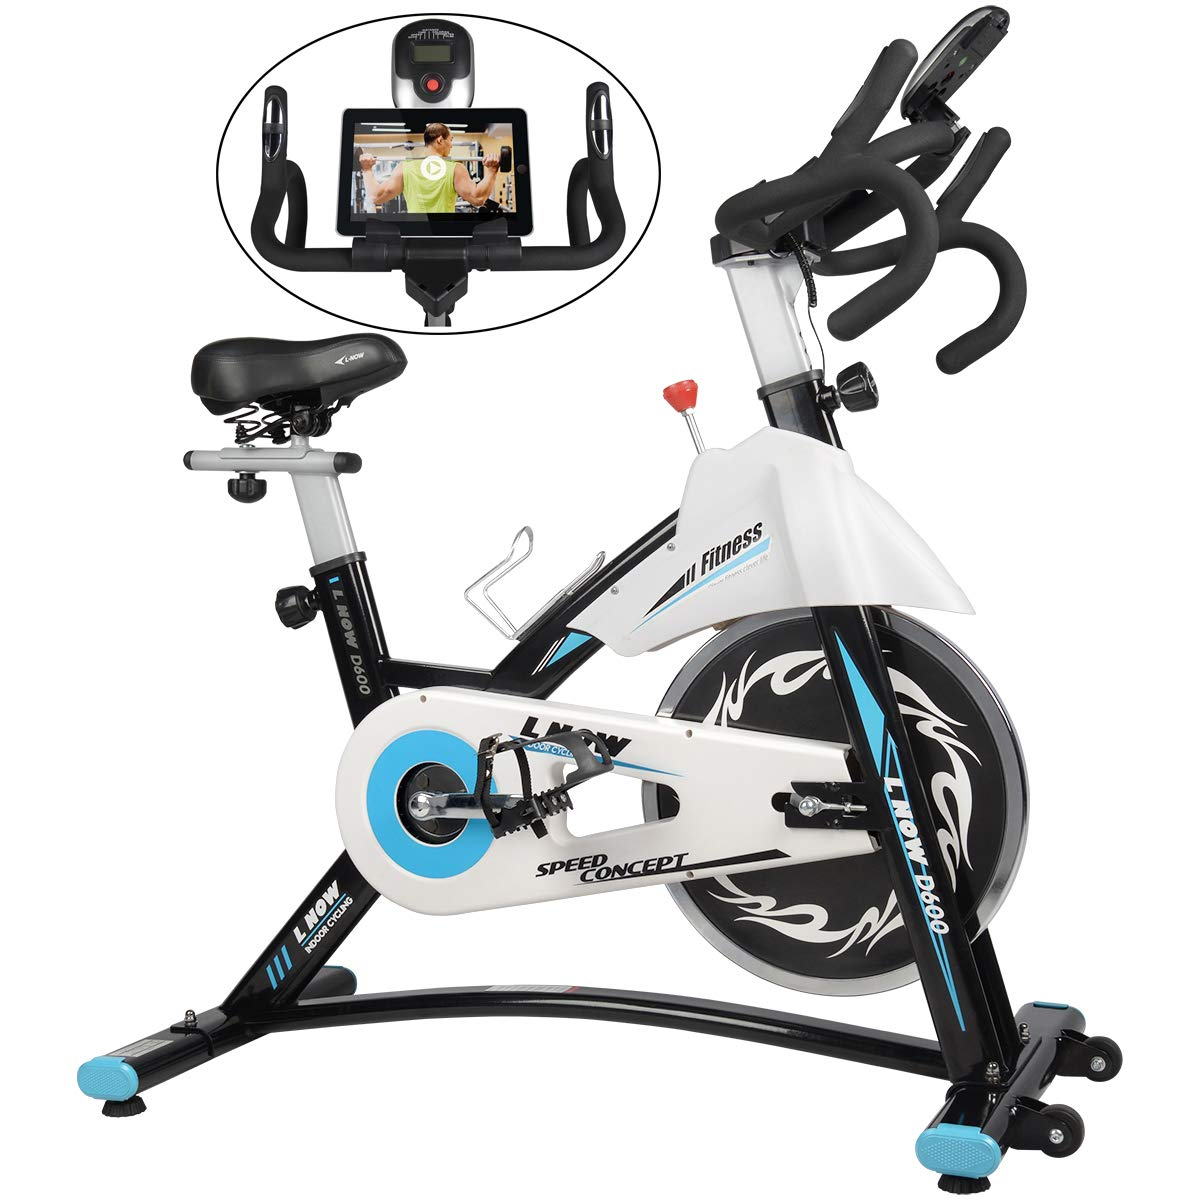 Tablet Holder D600 Stable Quiet and Smooth for Home Cardio Workout Belt Drive with Heart Rate Adjustable Seat and Handlebar L Now Indoor Exercise Bike Indoor Cycling Stationary Bike